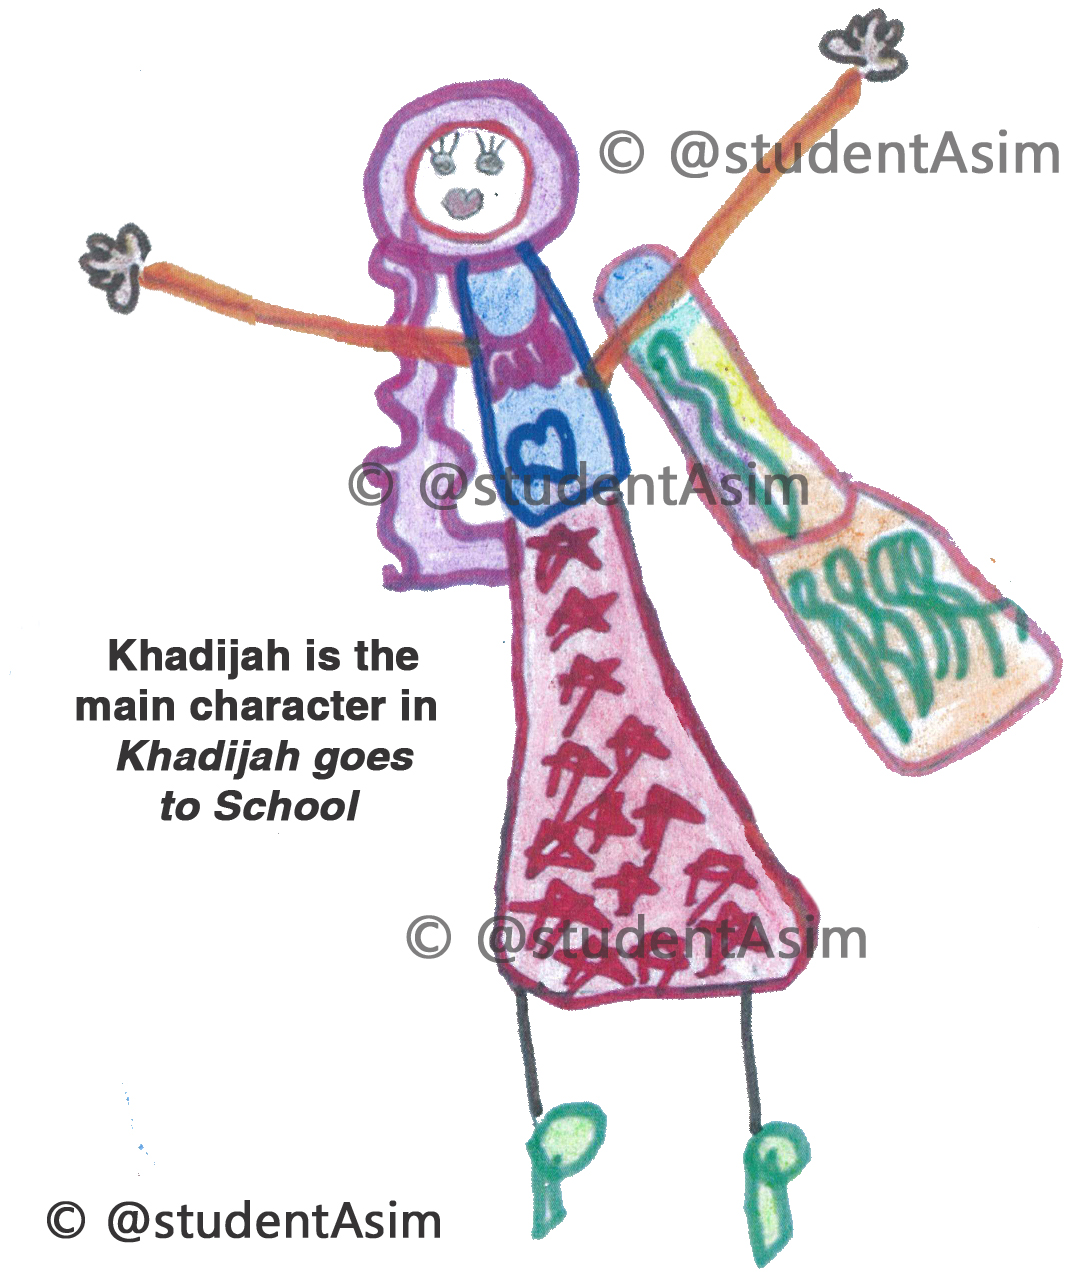 Khadijah is the main character in Khadijah goes to School by @studentAsim